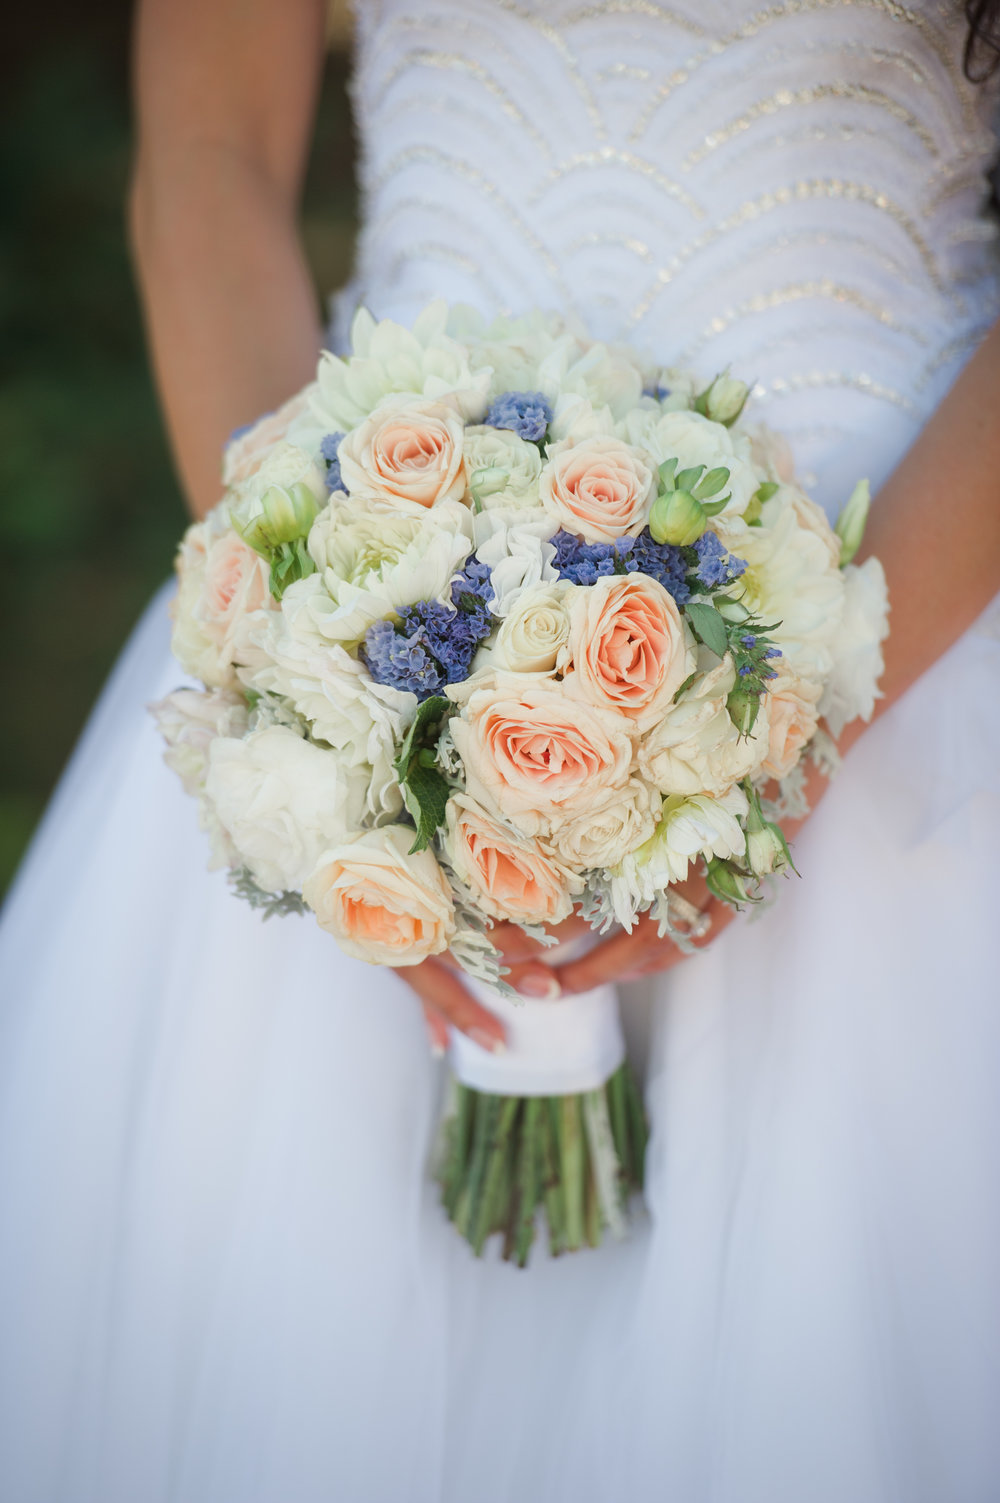 bride_bouquet_sydney_wedding_florist.JPG